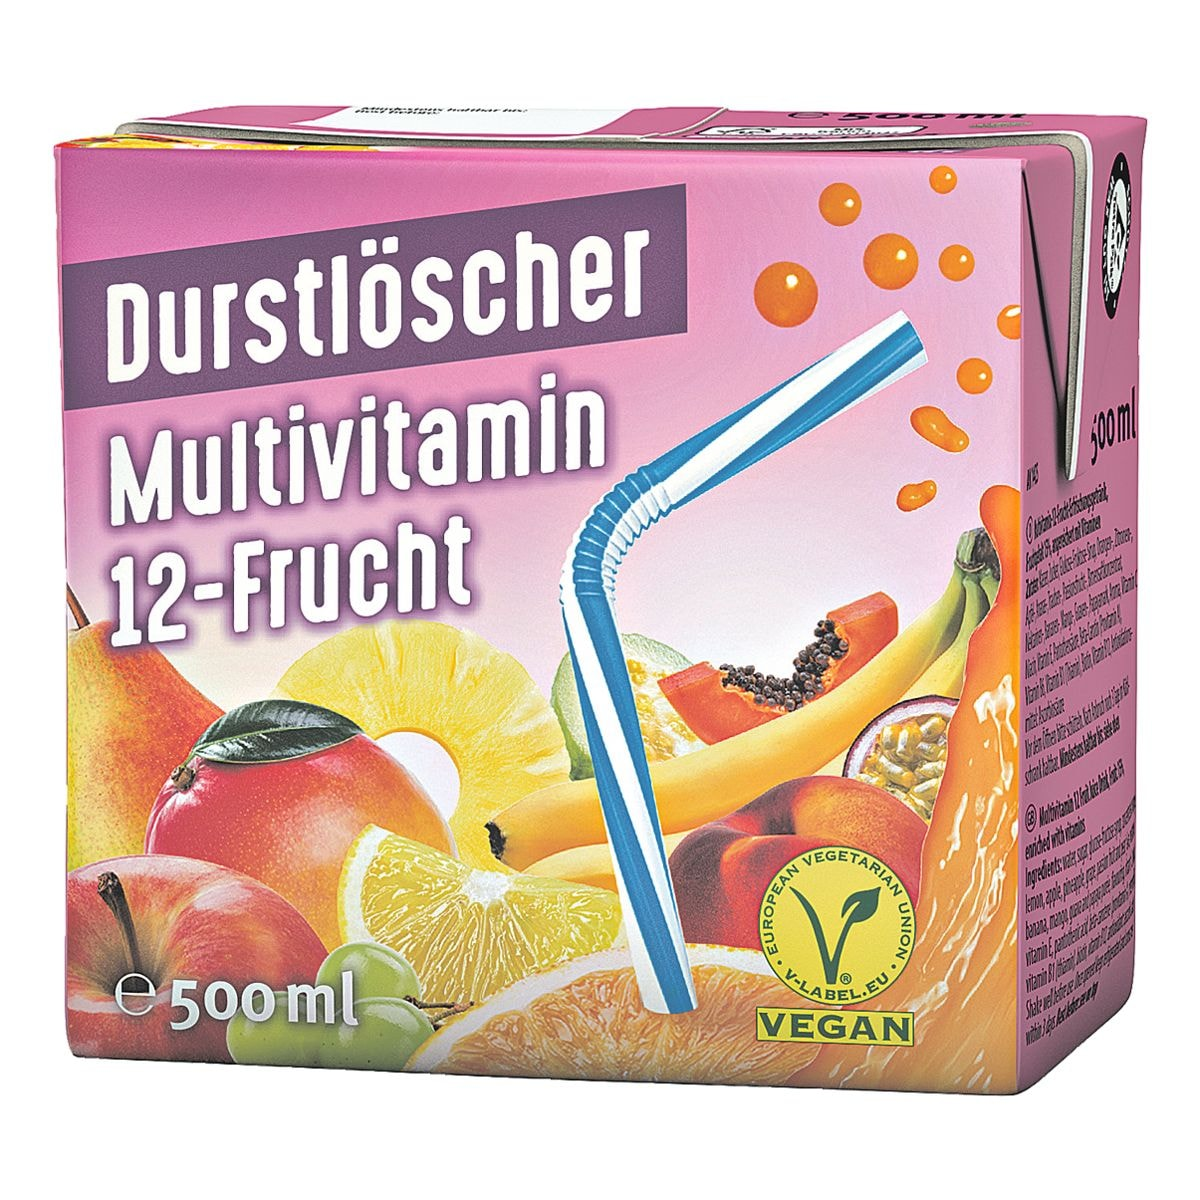 Durstlöscher Multivitamin